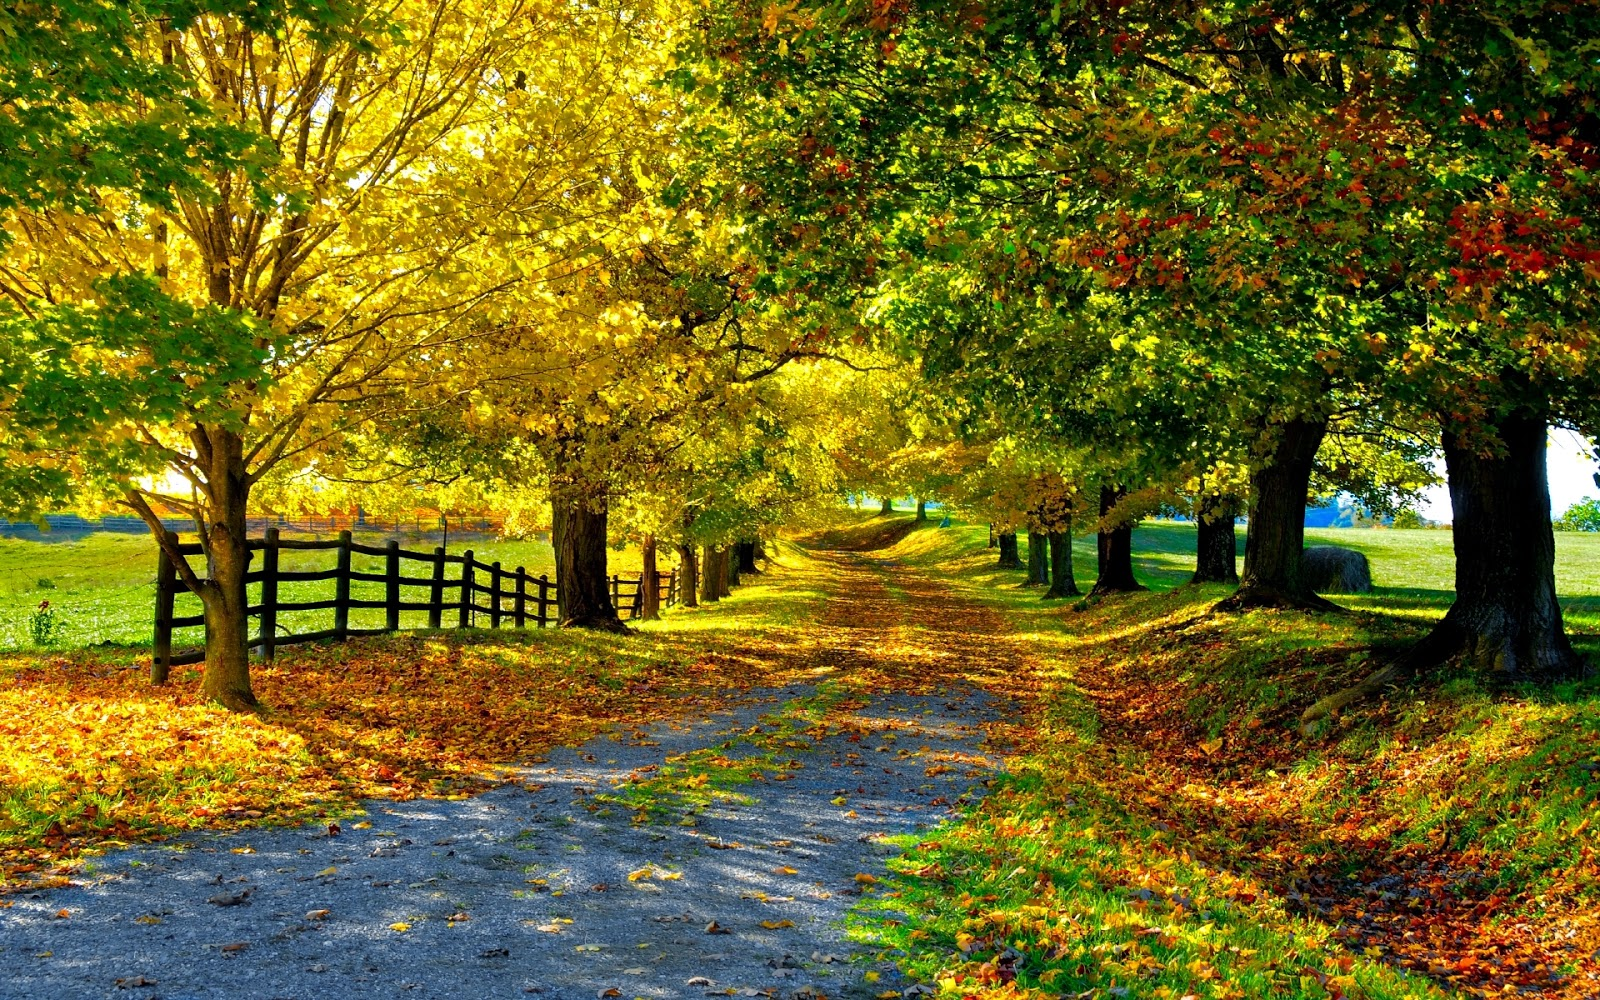 Autumn Sunny Day, Free Wallpaper